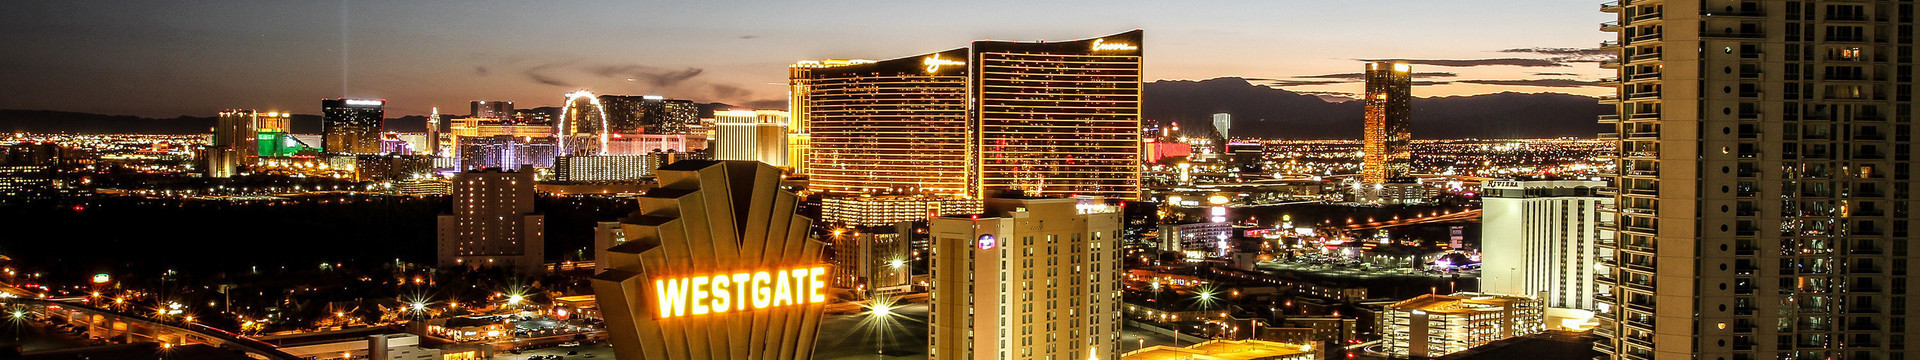 Win Loss Statement Requests for our Las Vegas Hotel and Casino | Westgate Las Vegas at Night